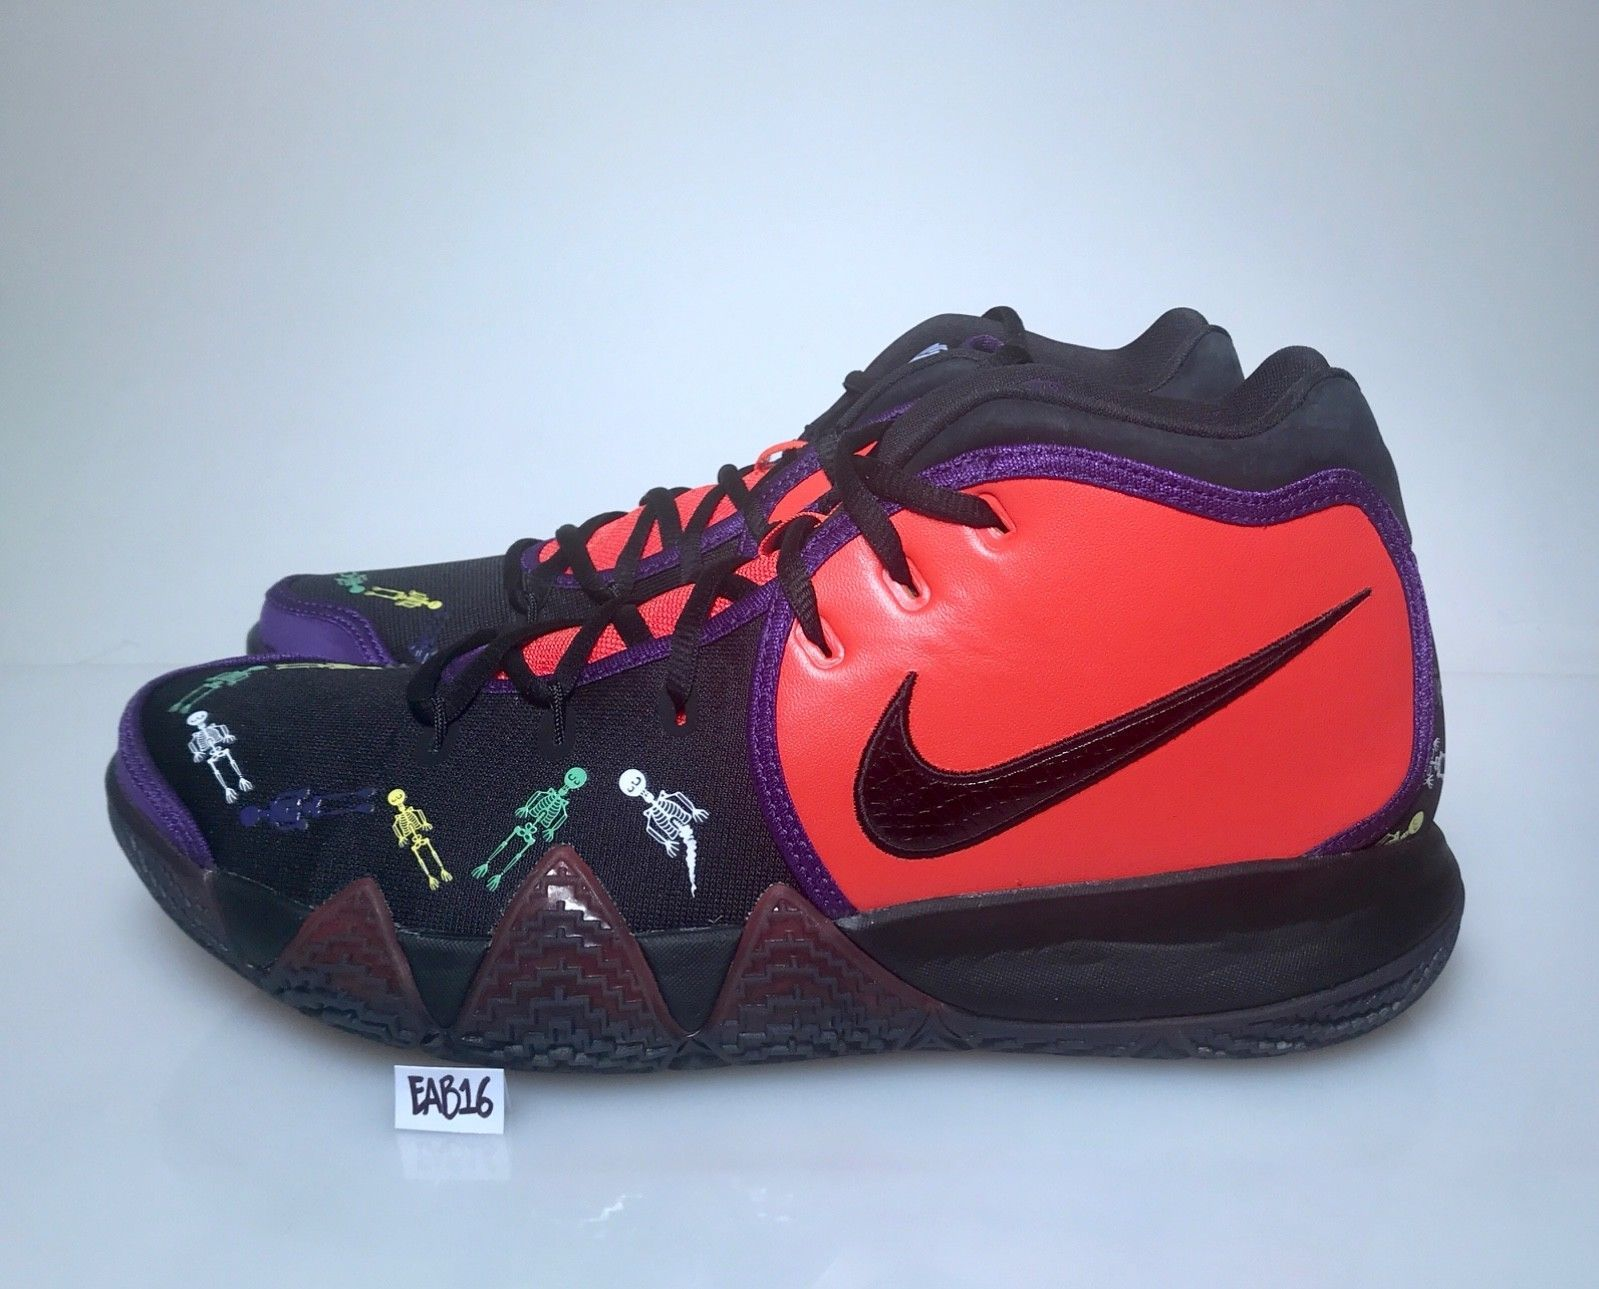 6b20487692c Details about Nike Kyrie Irving 4 IV Day Of The Dead DOTD TV PE 1 ...